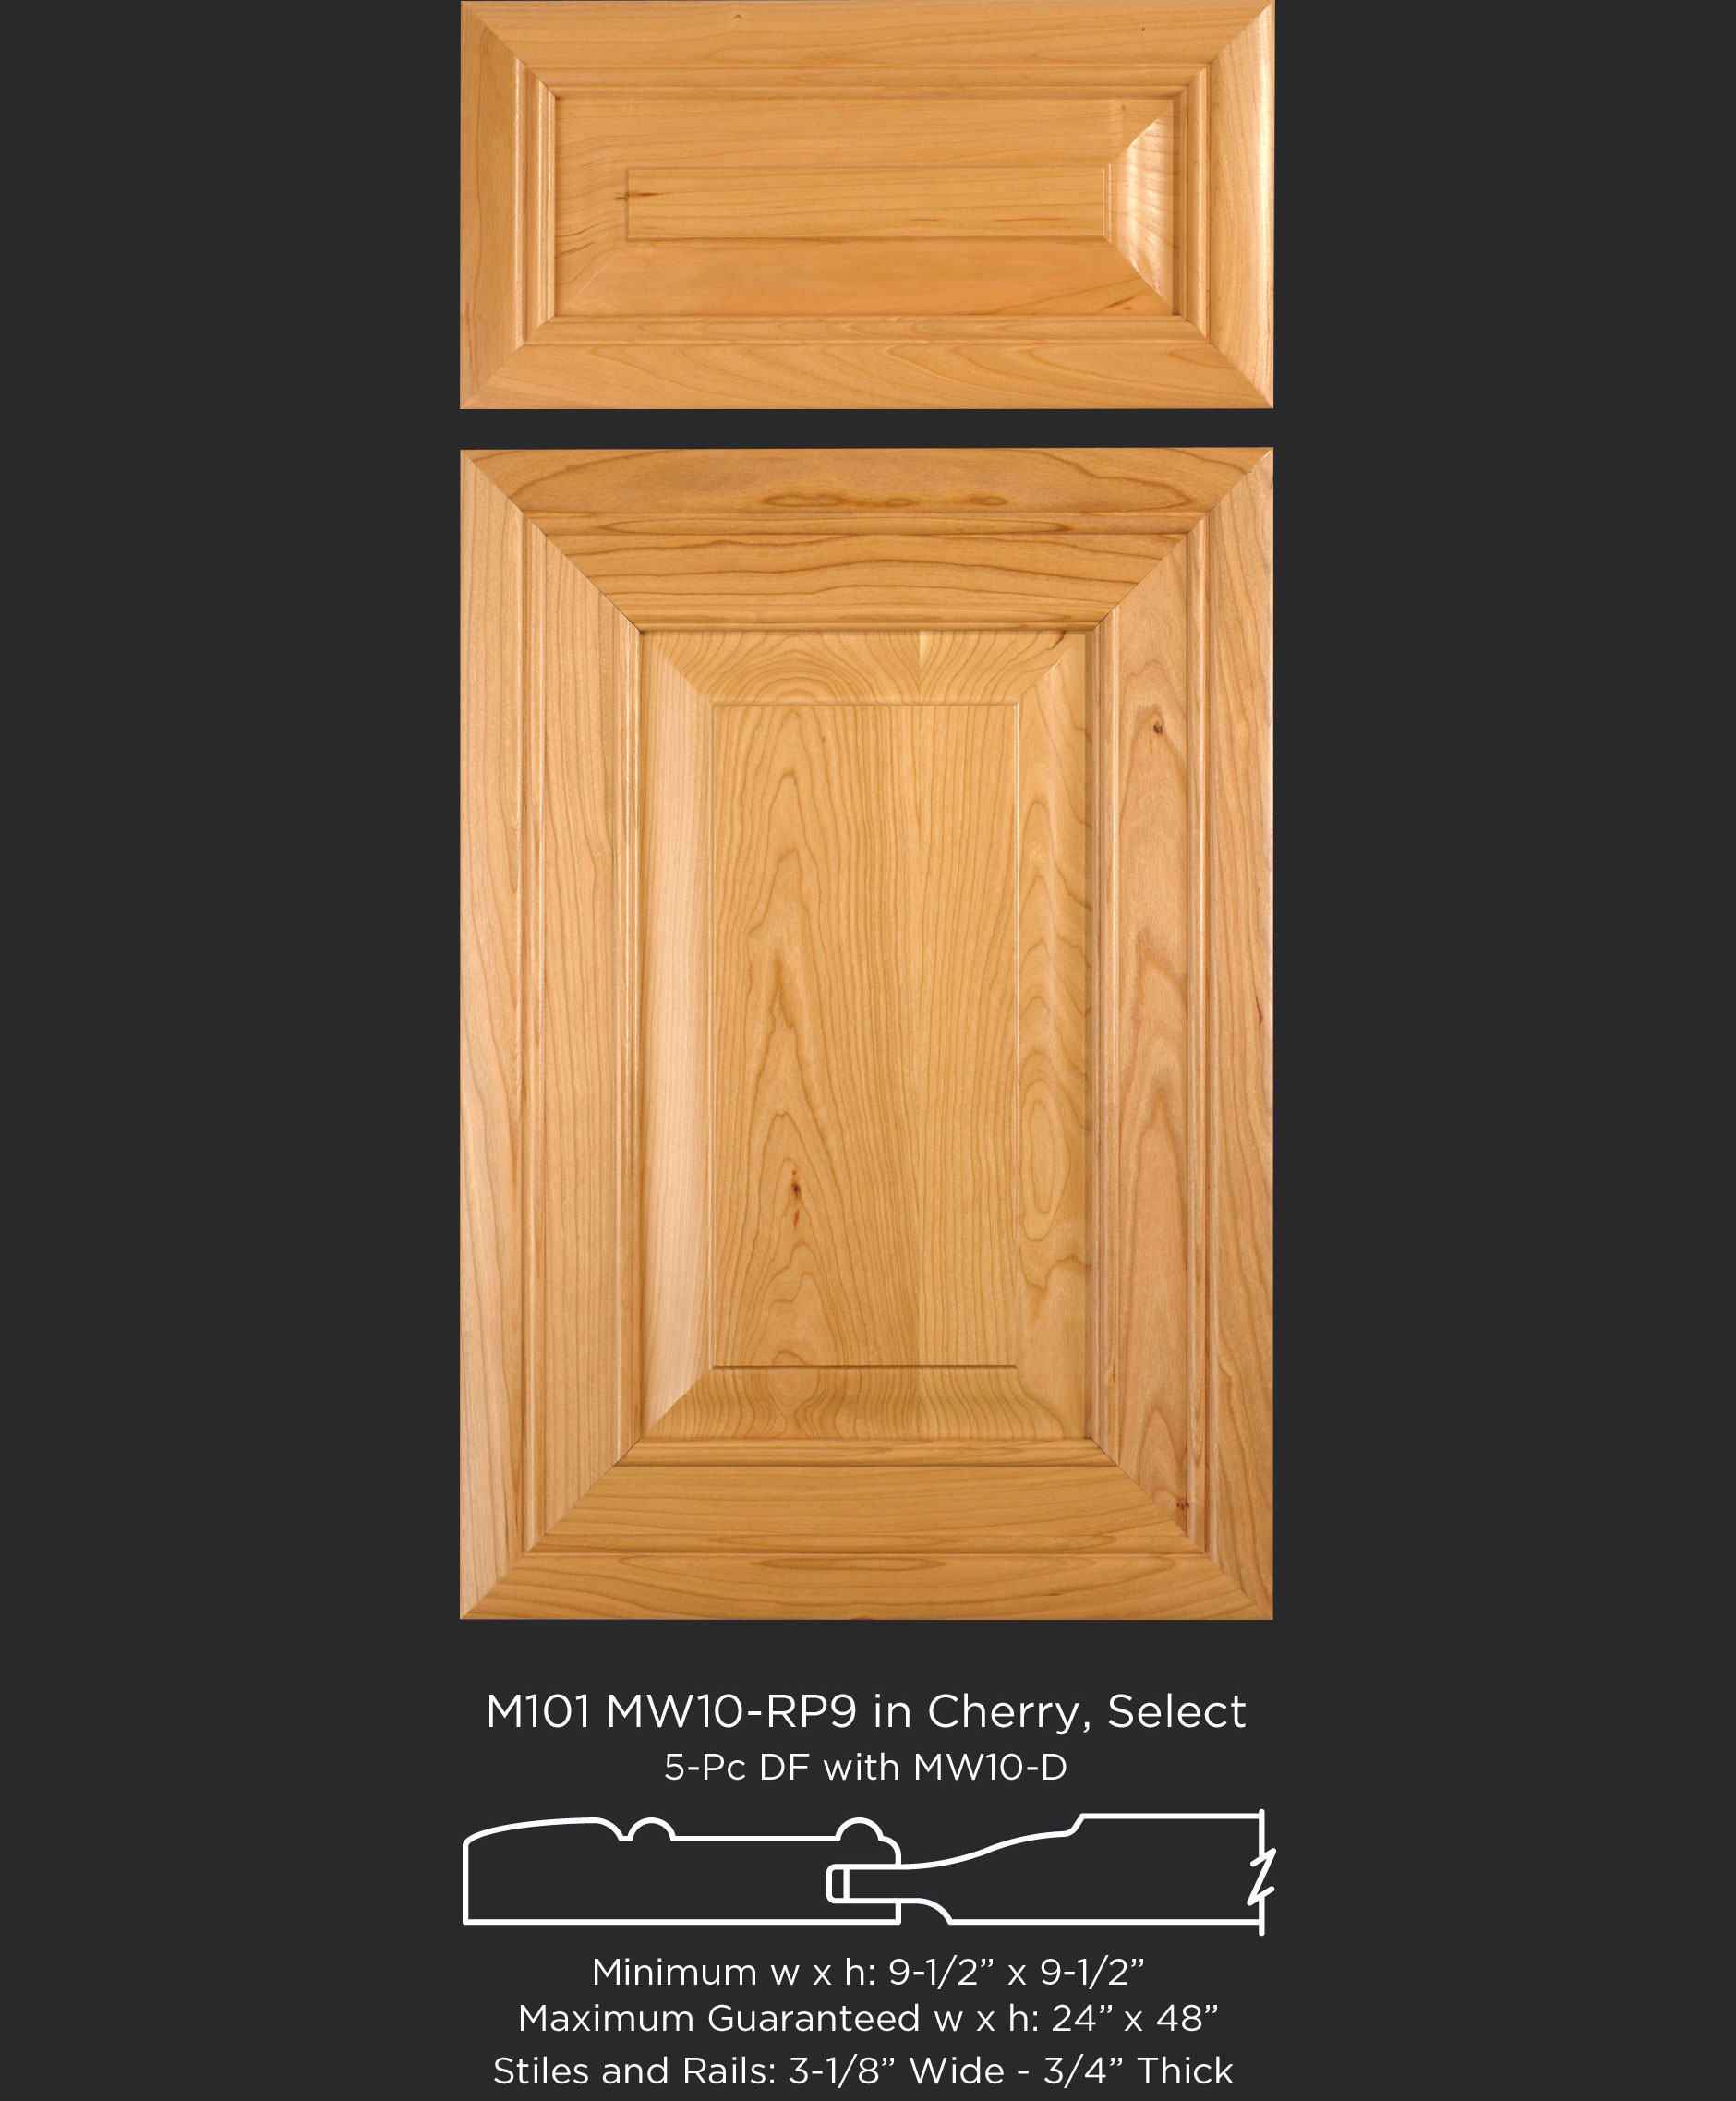 Mitered Cabinet Door M101 MW10-RP9 in Cherry, Select and 5-piece drawer front with MW10-D